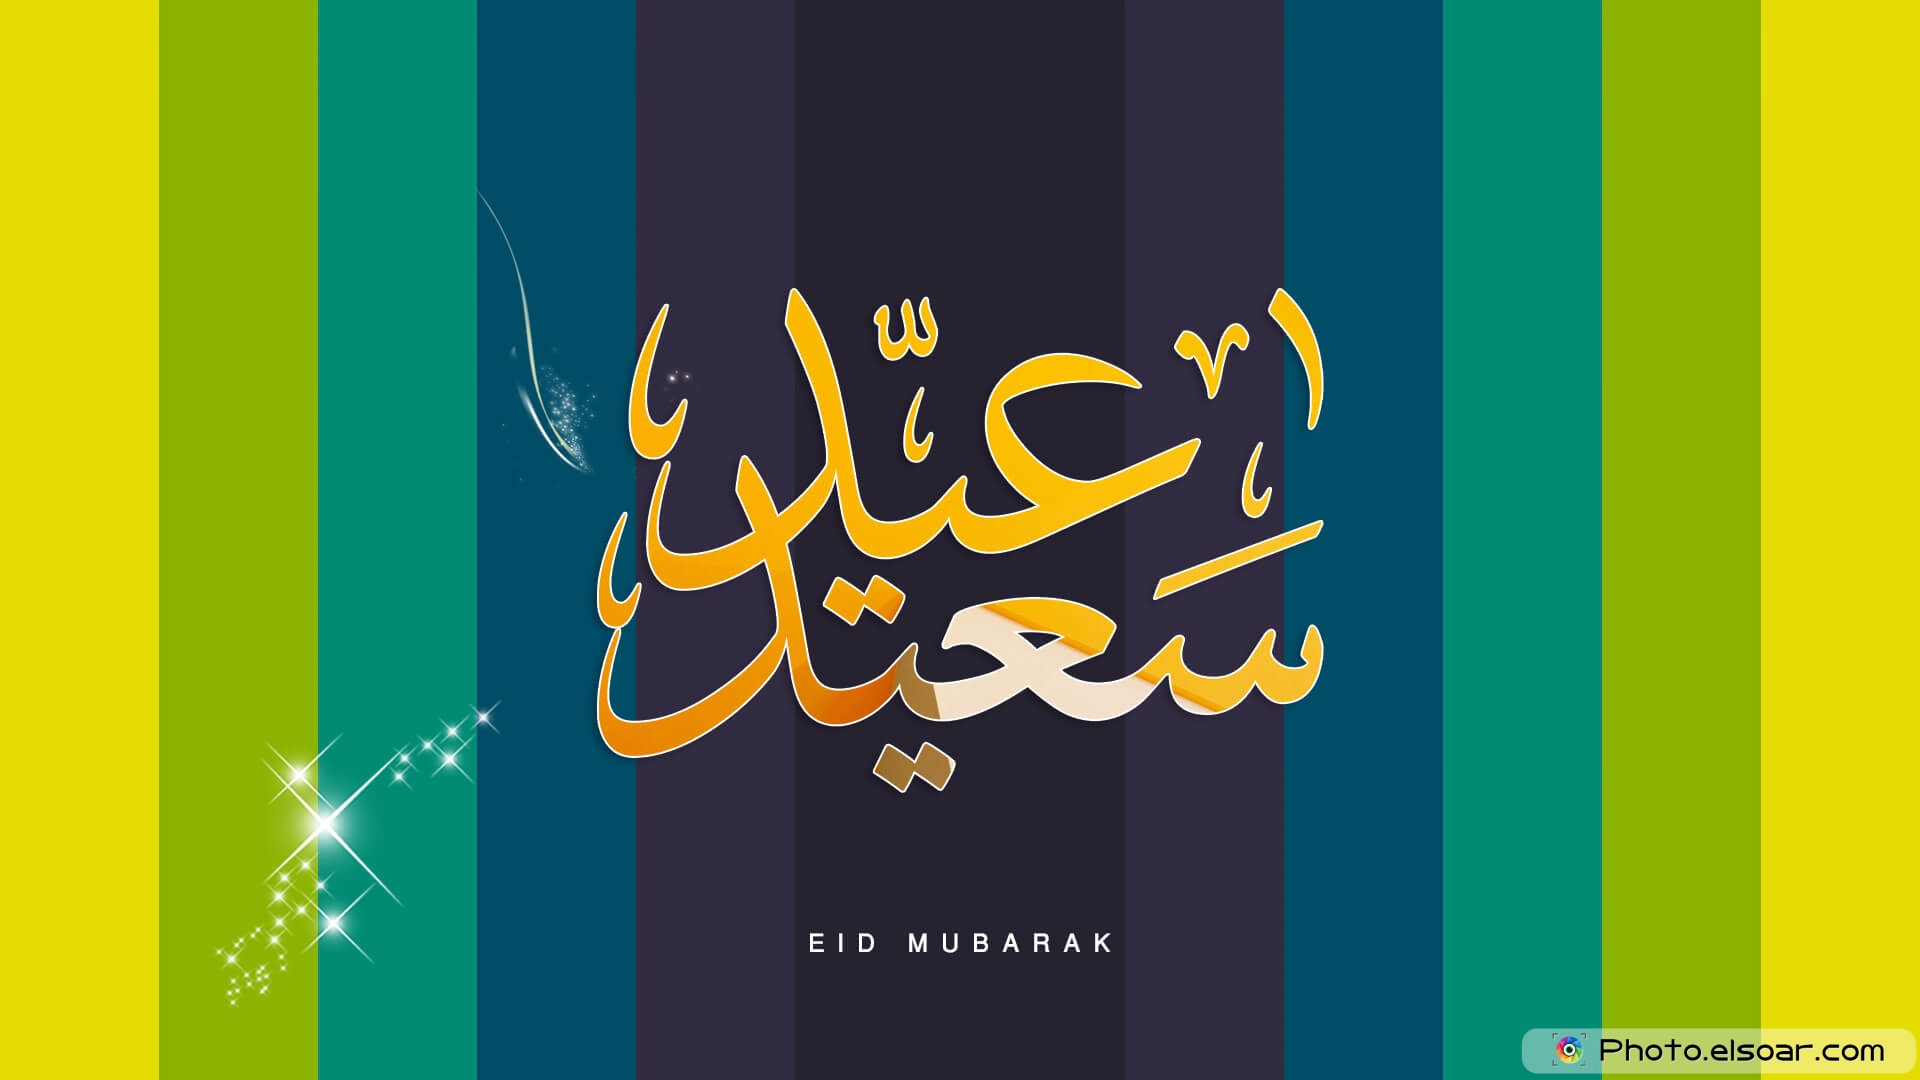 Eid Mubarak Cards Images,Advance Eid Mubarak Cards,Eid Mubarak Wishes,Eid Ul Fitr,Eid Mubarak Cards Wallpapers, Advance Eid Mubarak